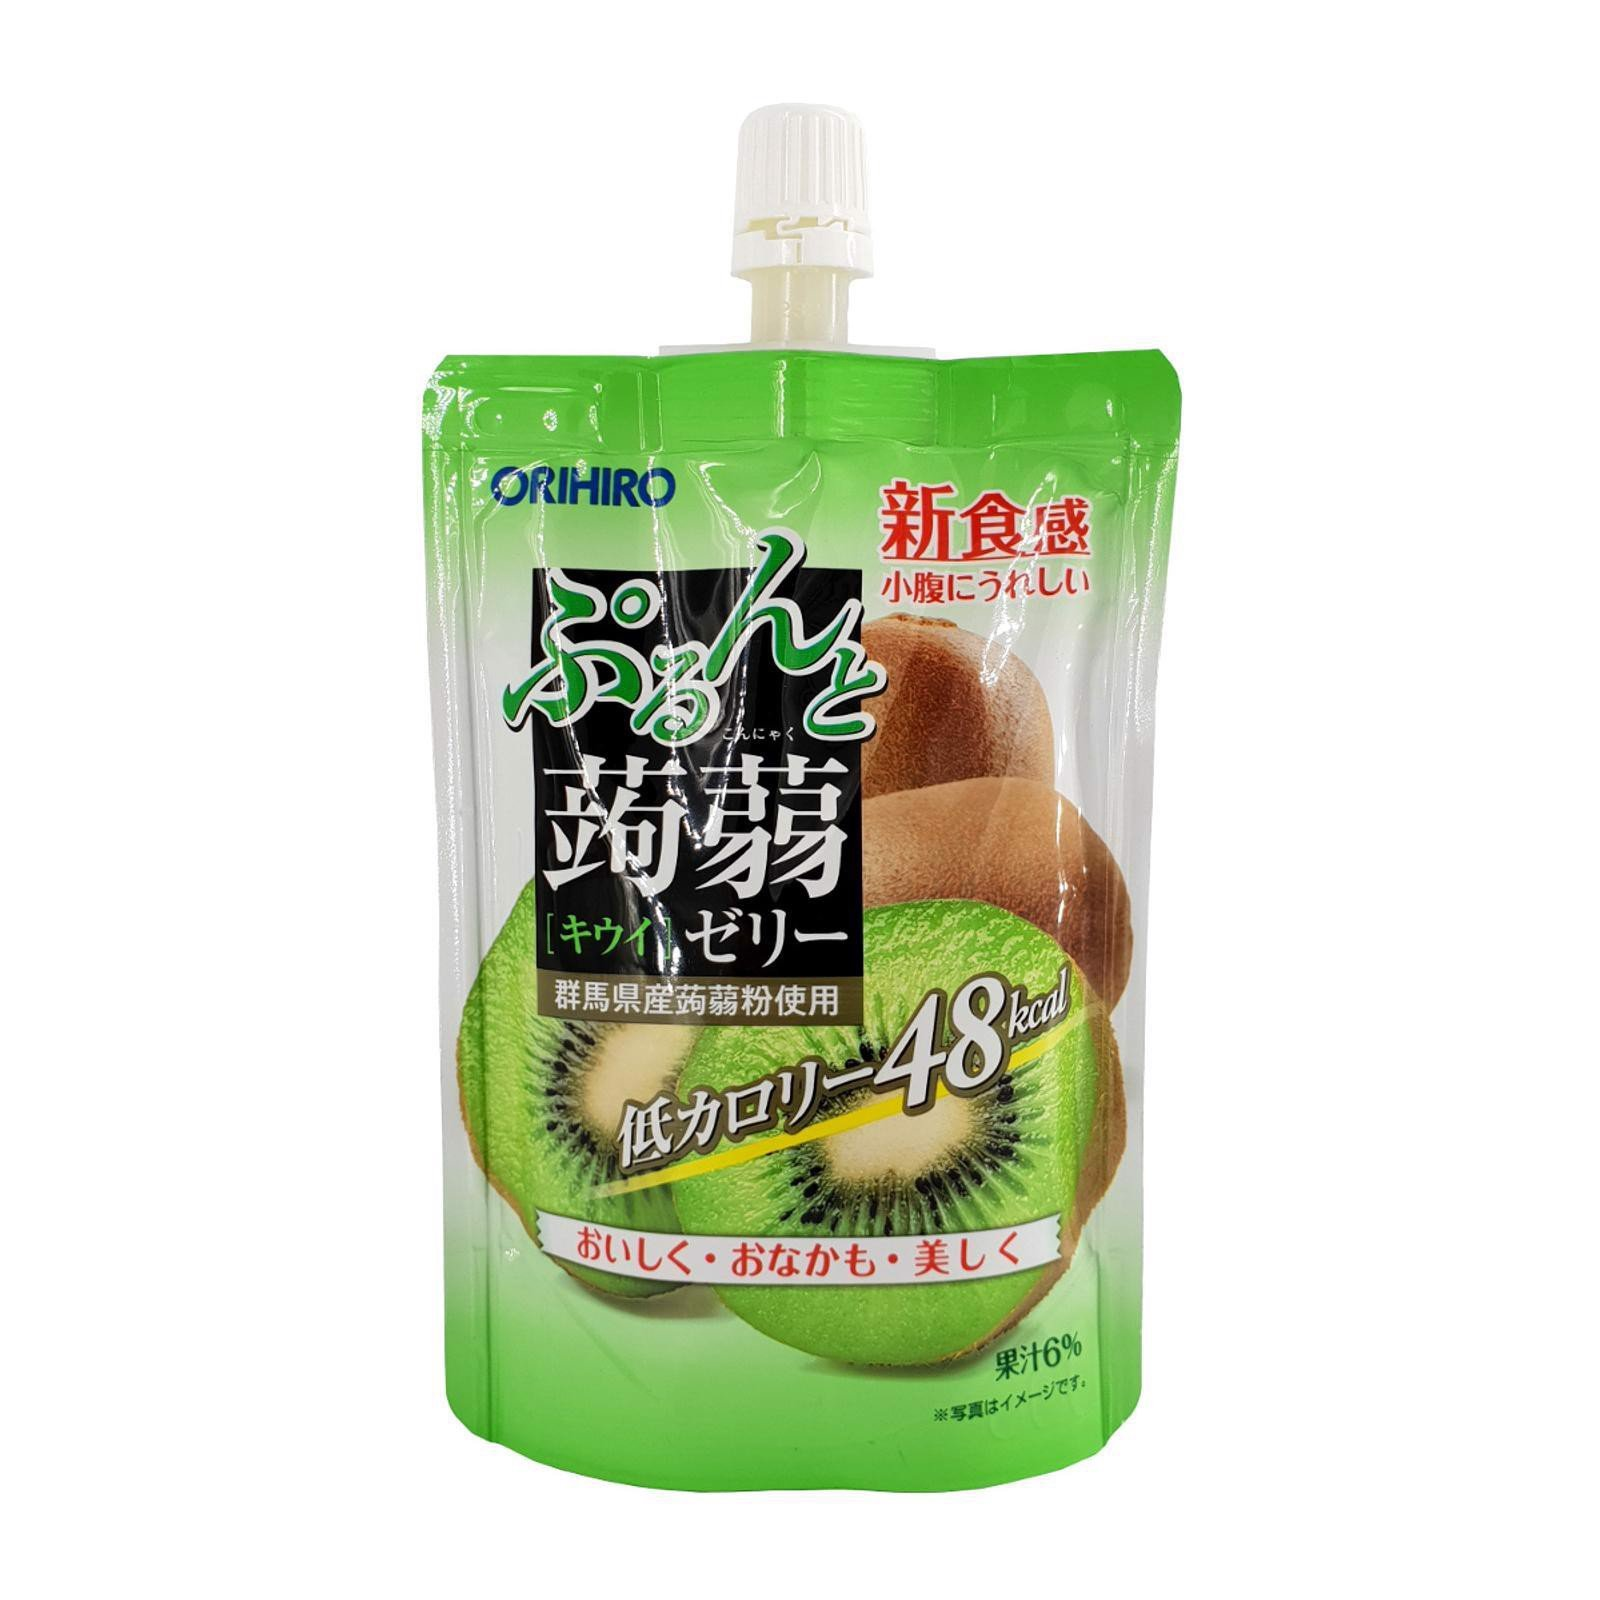 Thạch Kiwi Orihiro Purun and Kiwi jelly 130g